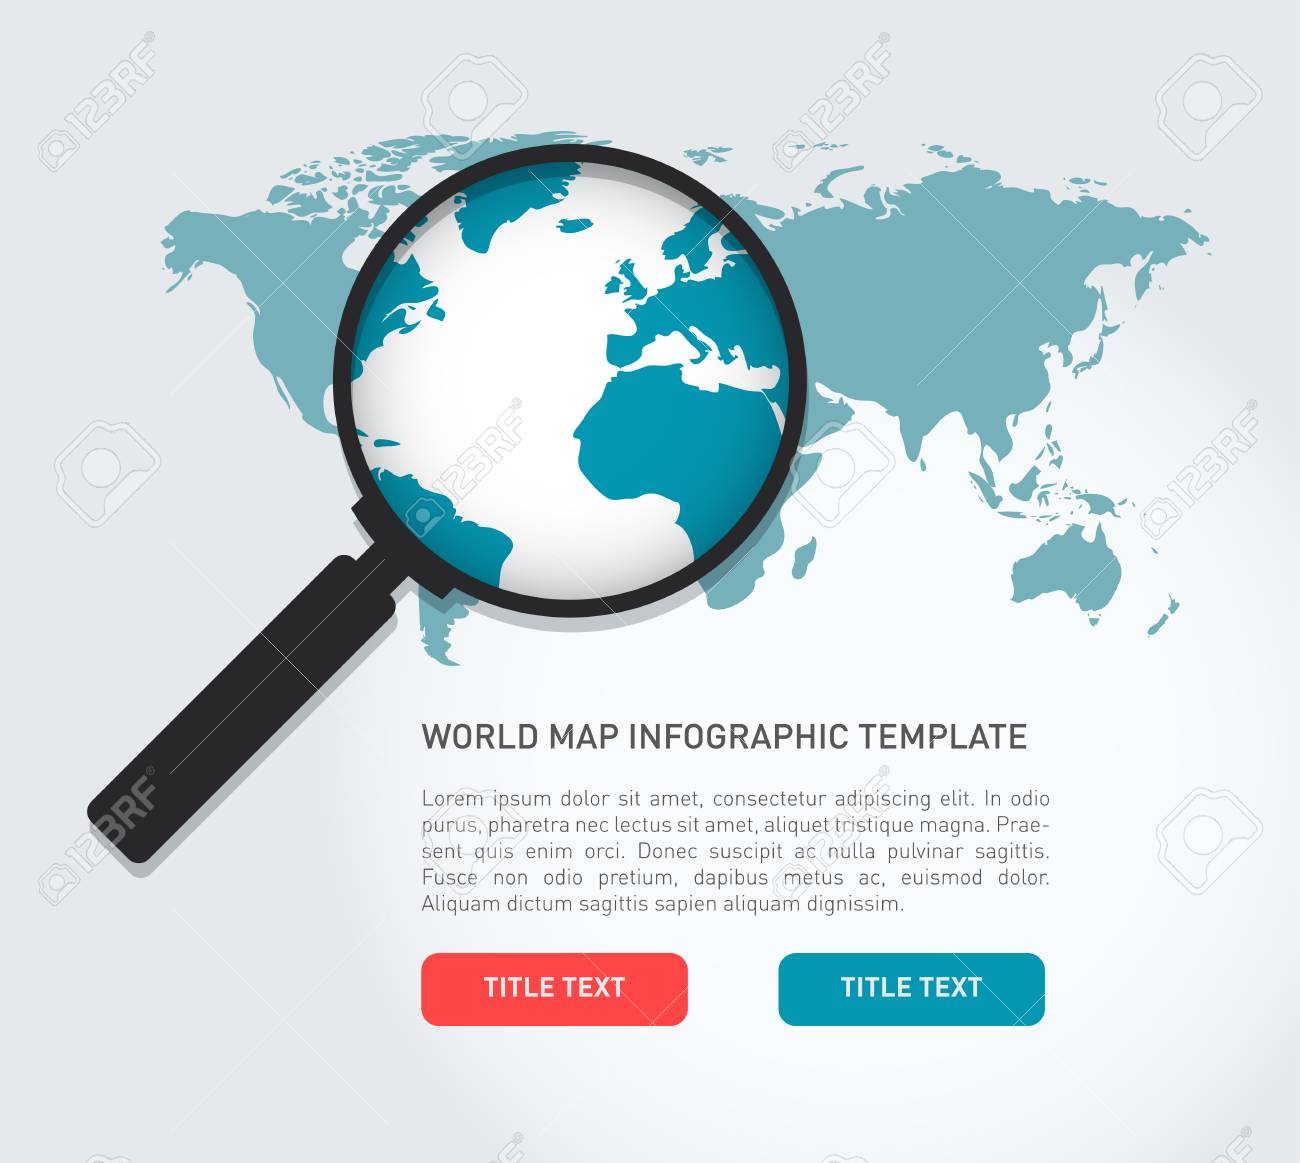 Search World Map.Global Search Concept In Flat Style With A World Map And A